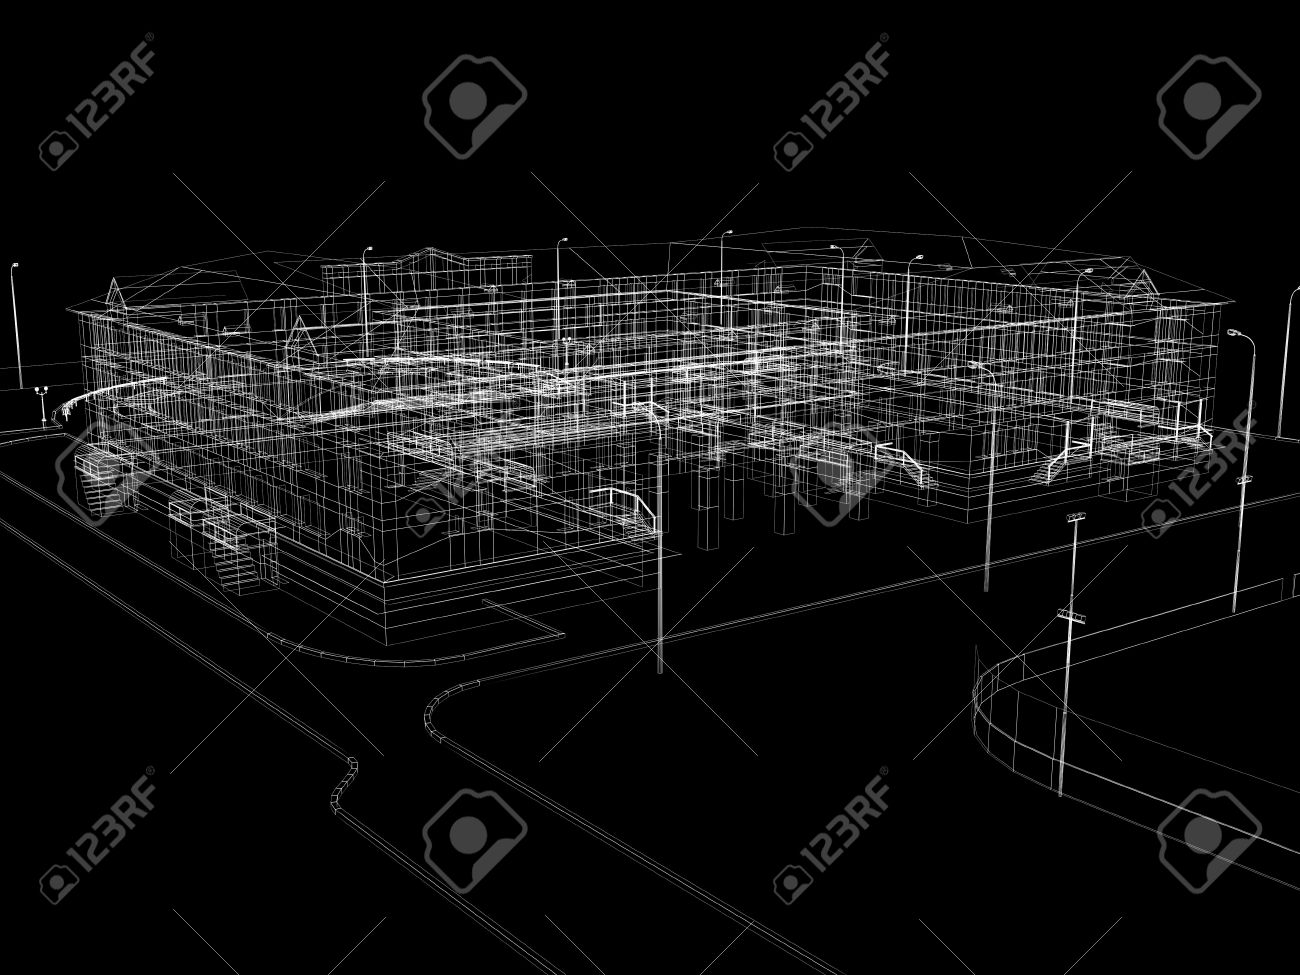 Abstract archticture  Wire-frame render on black background Stock Photo - 21442092